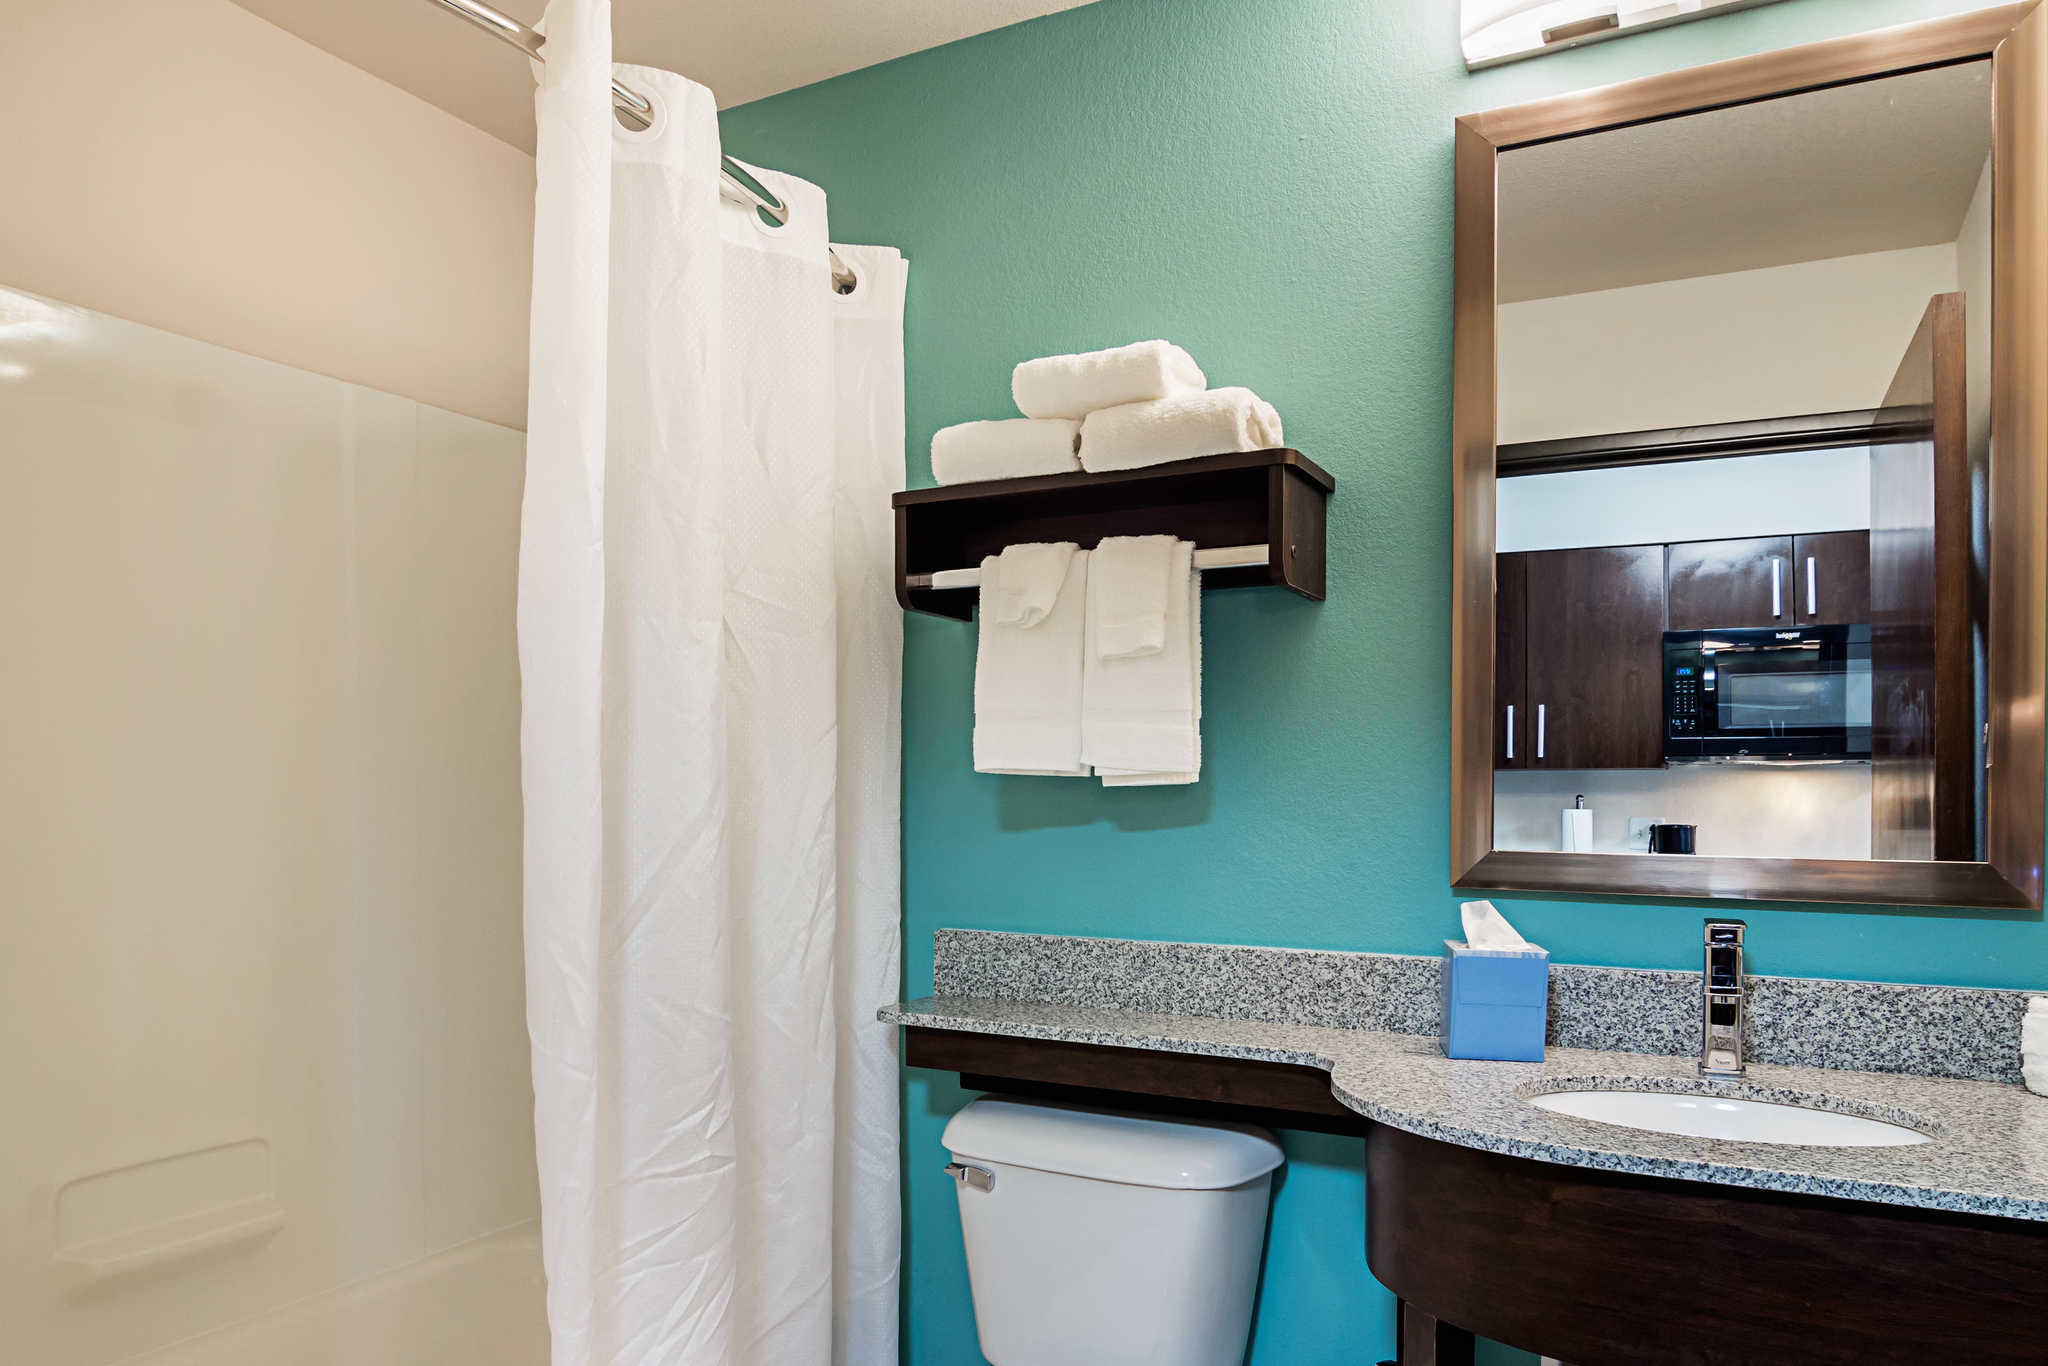 Suburban Extended Stay Hotel image 20